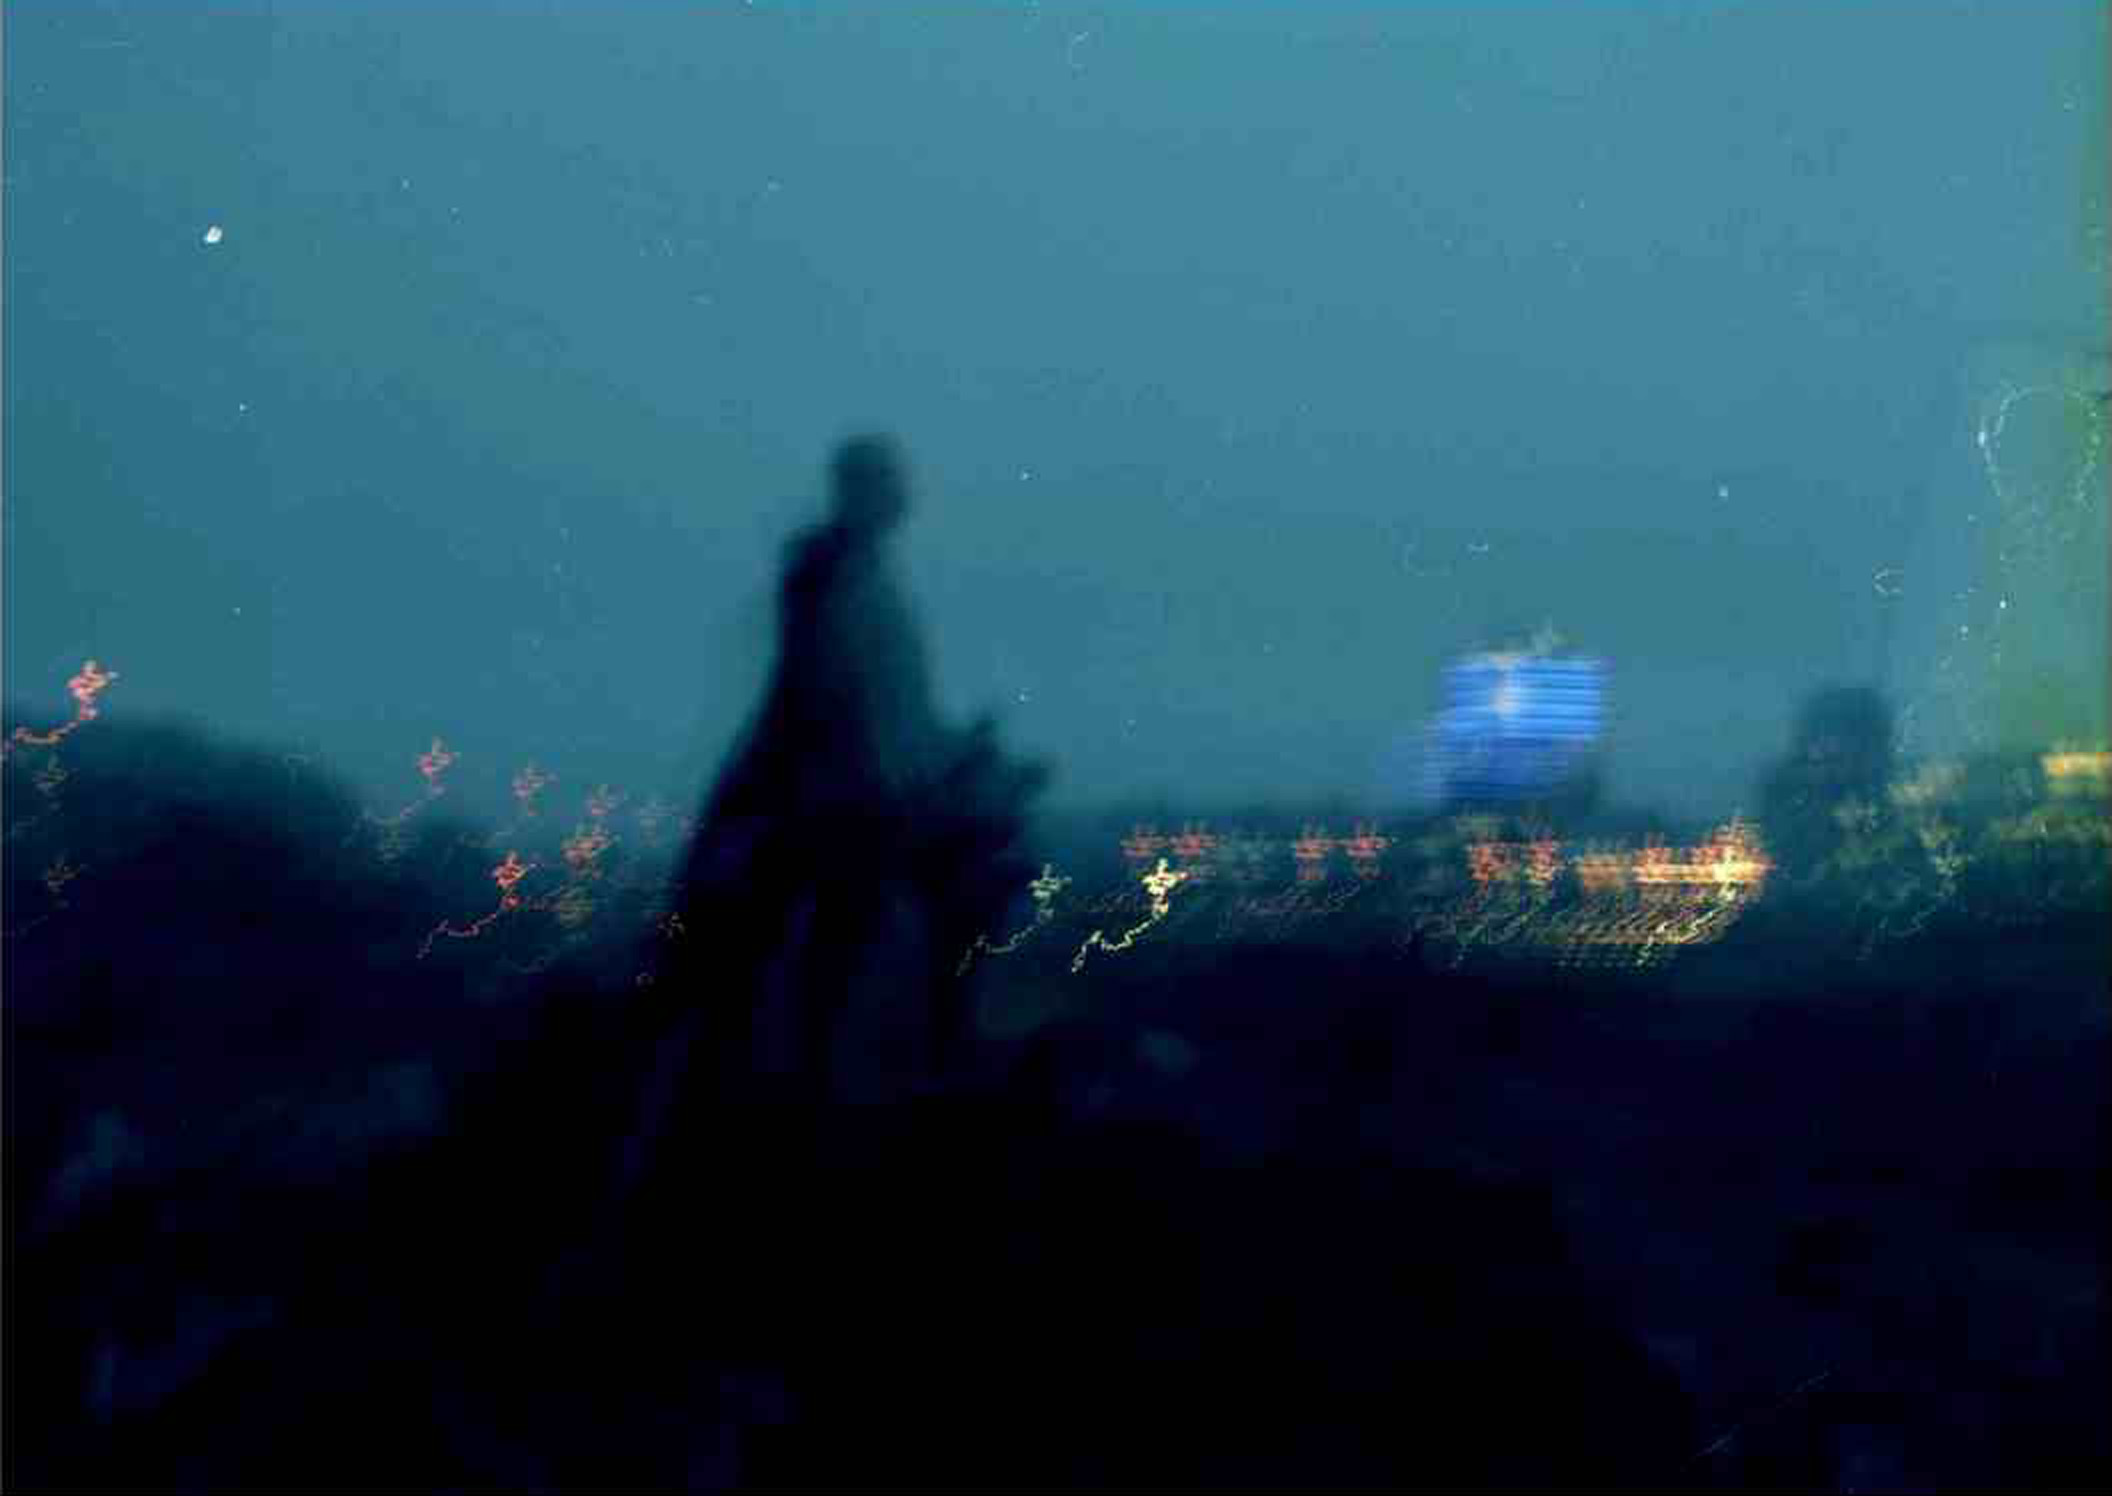 Berlin Night, 2005